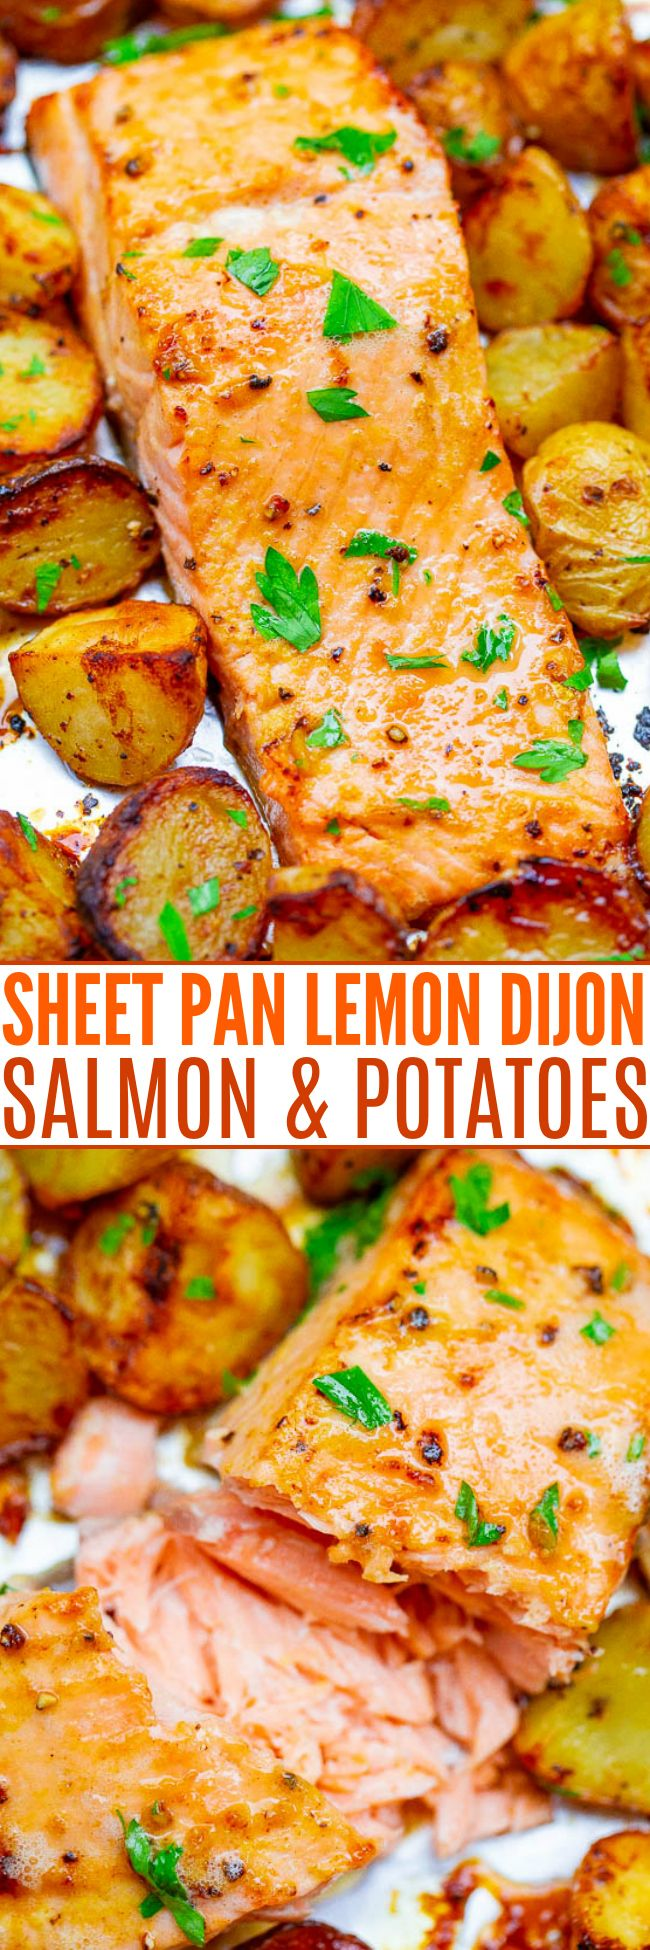 Sheet Pan Lemon Dijon Baked Salmon and Potatoes - This baked salmon and potatoes recipe is ready in 25 minutes, the lemon butter and Dijon mustard add so much FLAVOR, and it's made on ONE sheet pan!! EASY comfort food for busy weeknights!!